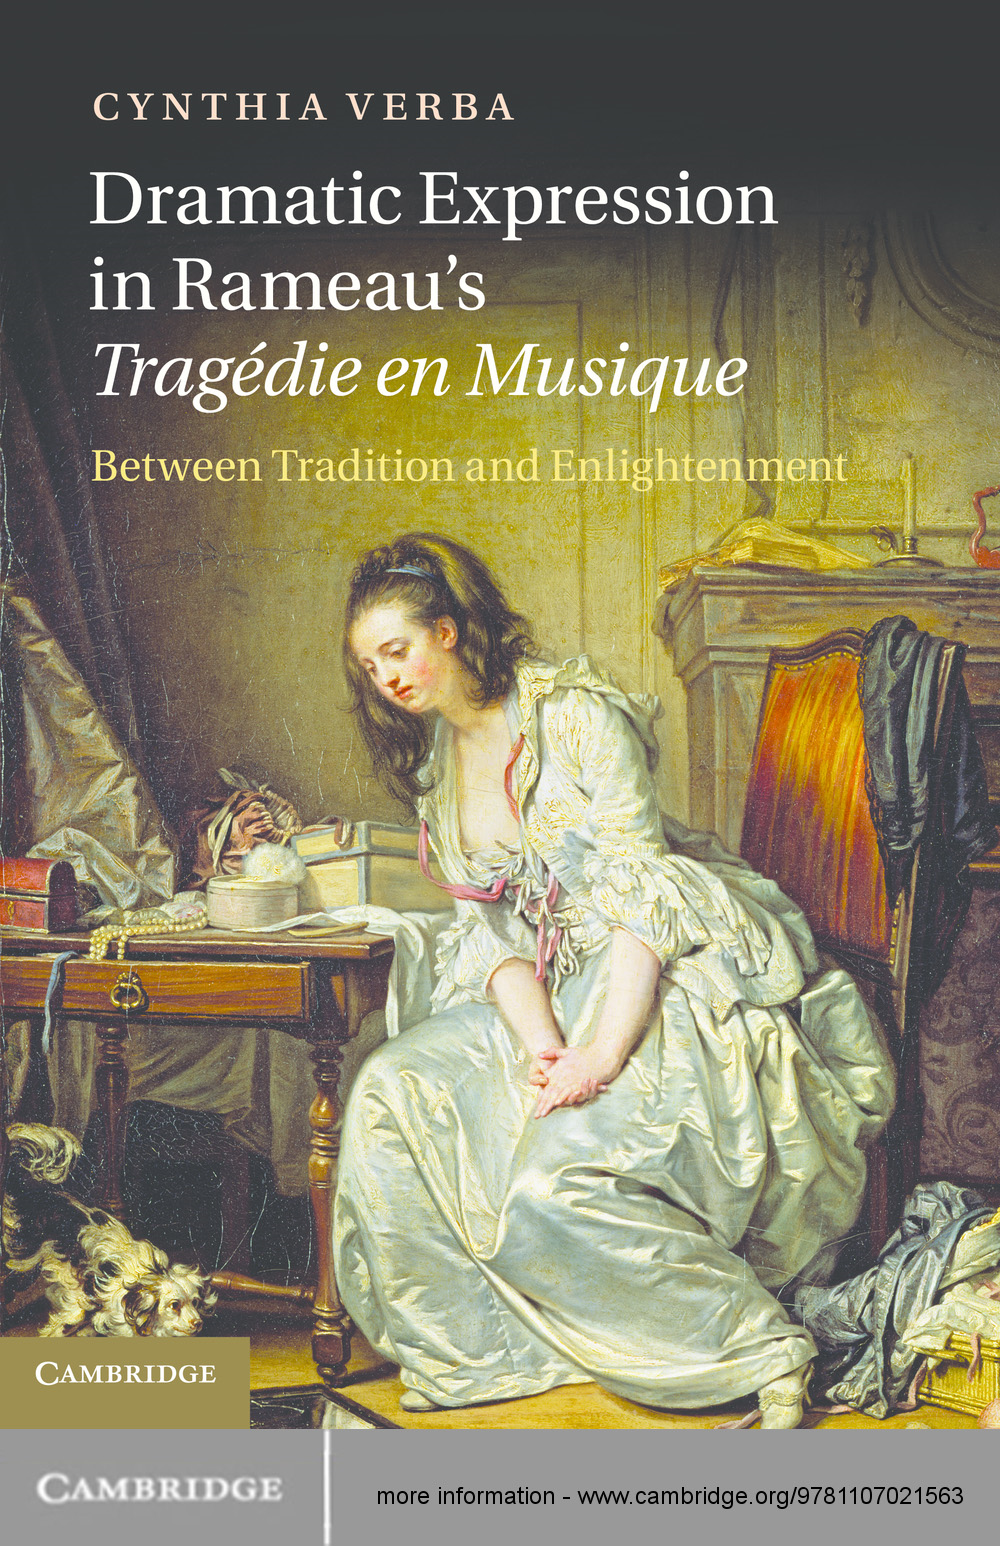 Dramatic Expression in Rameau's Trag�die en Musique Between Tradition and Enlightenment